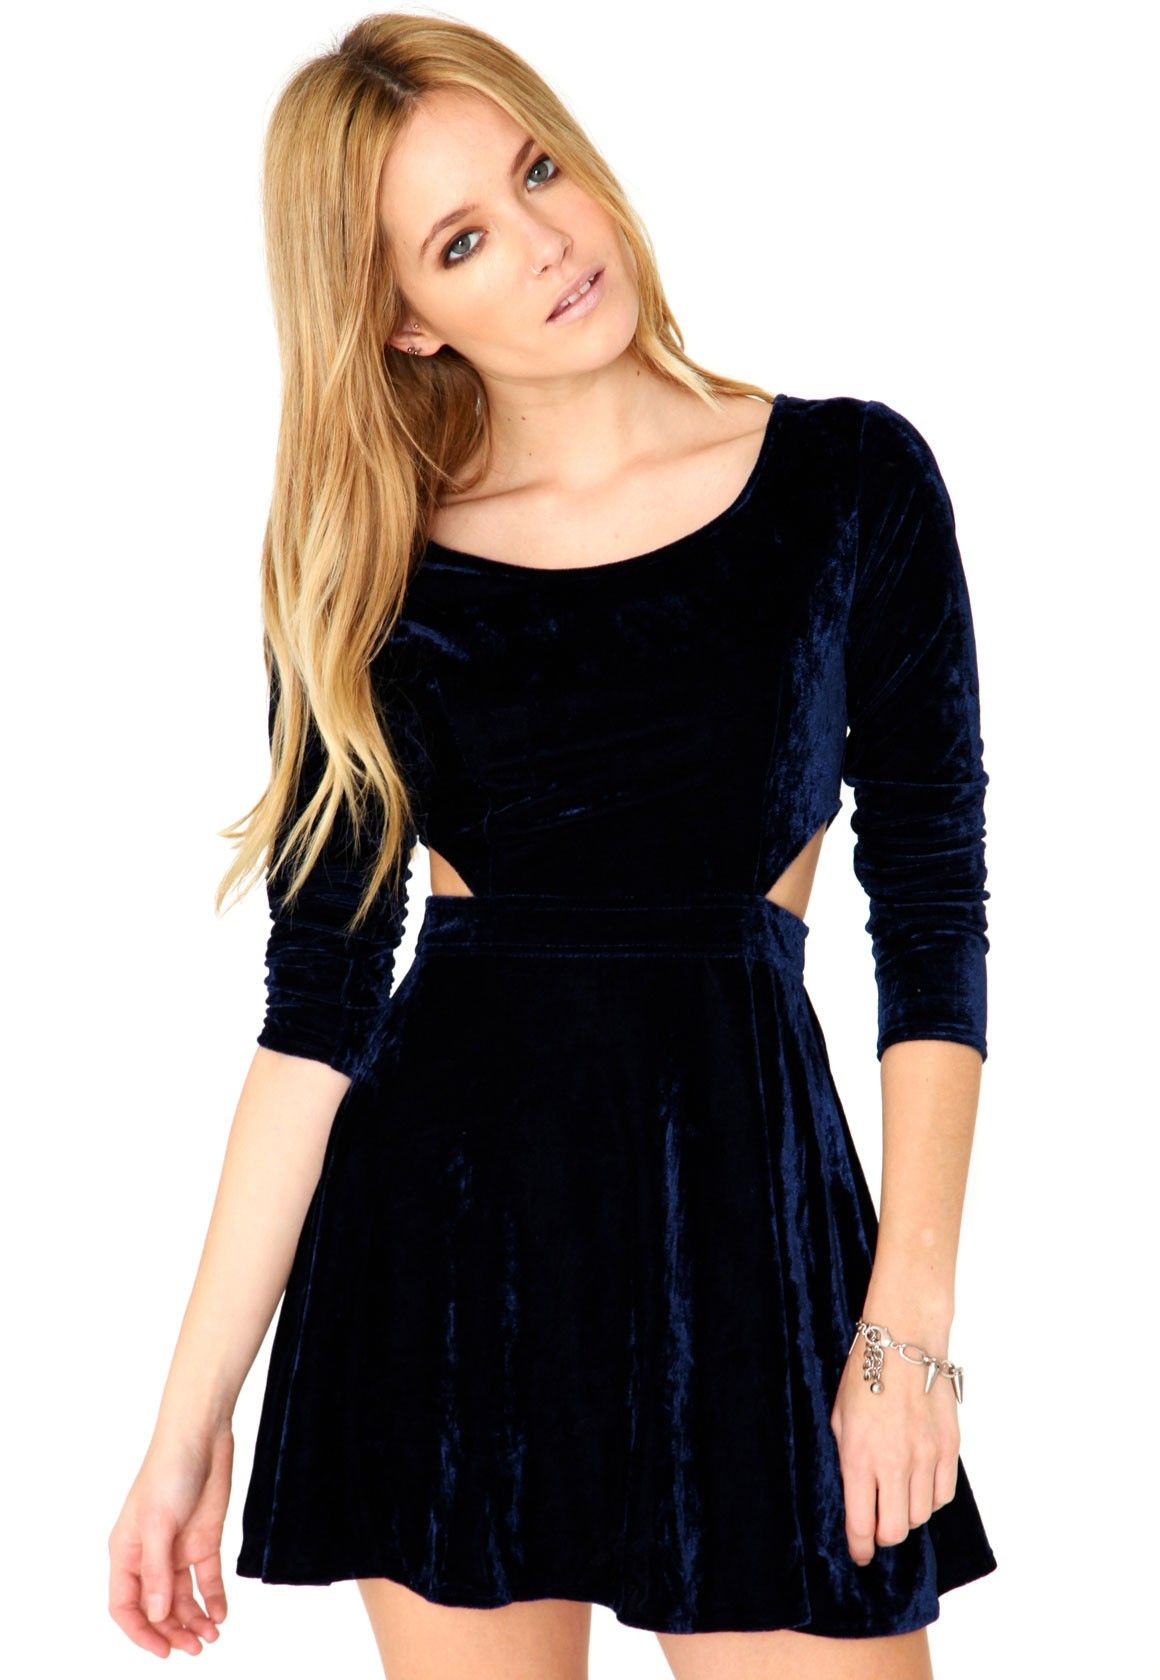 Bushea long sleeve velvet cut out dress in navy outfits